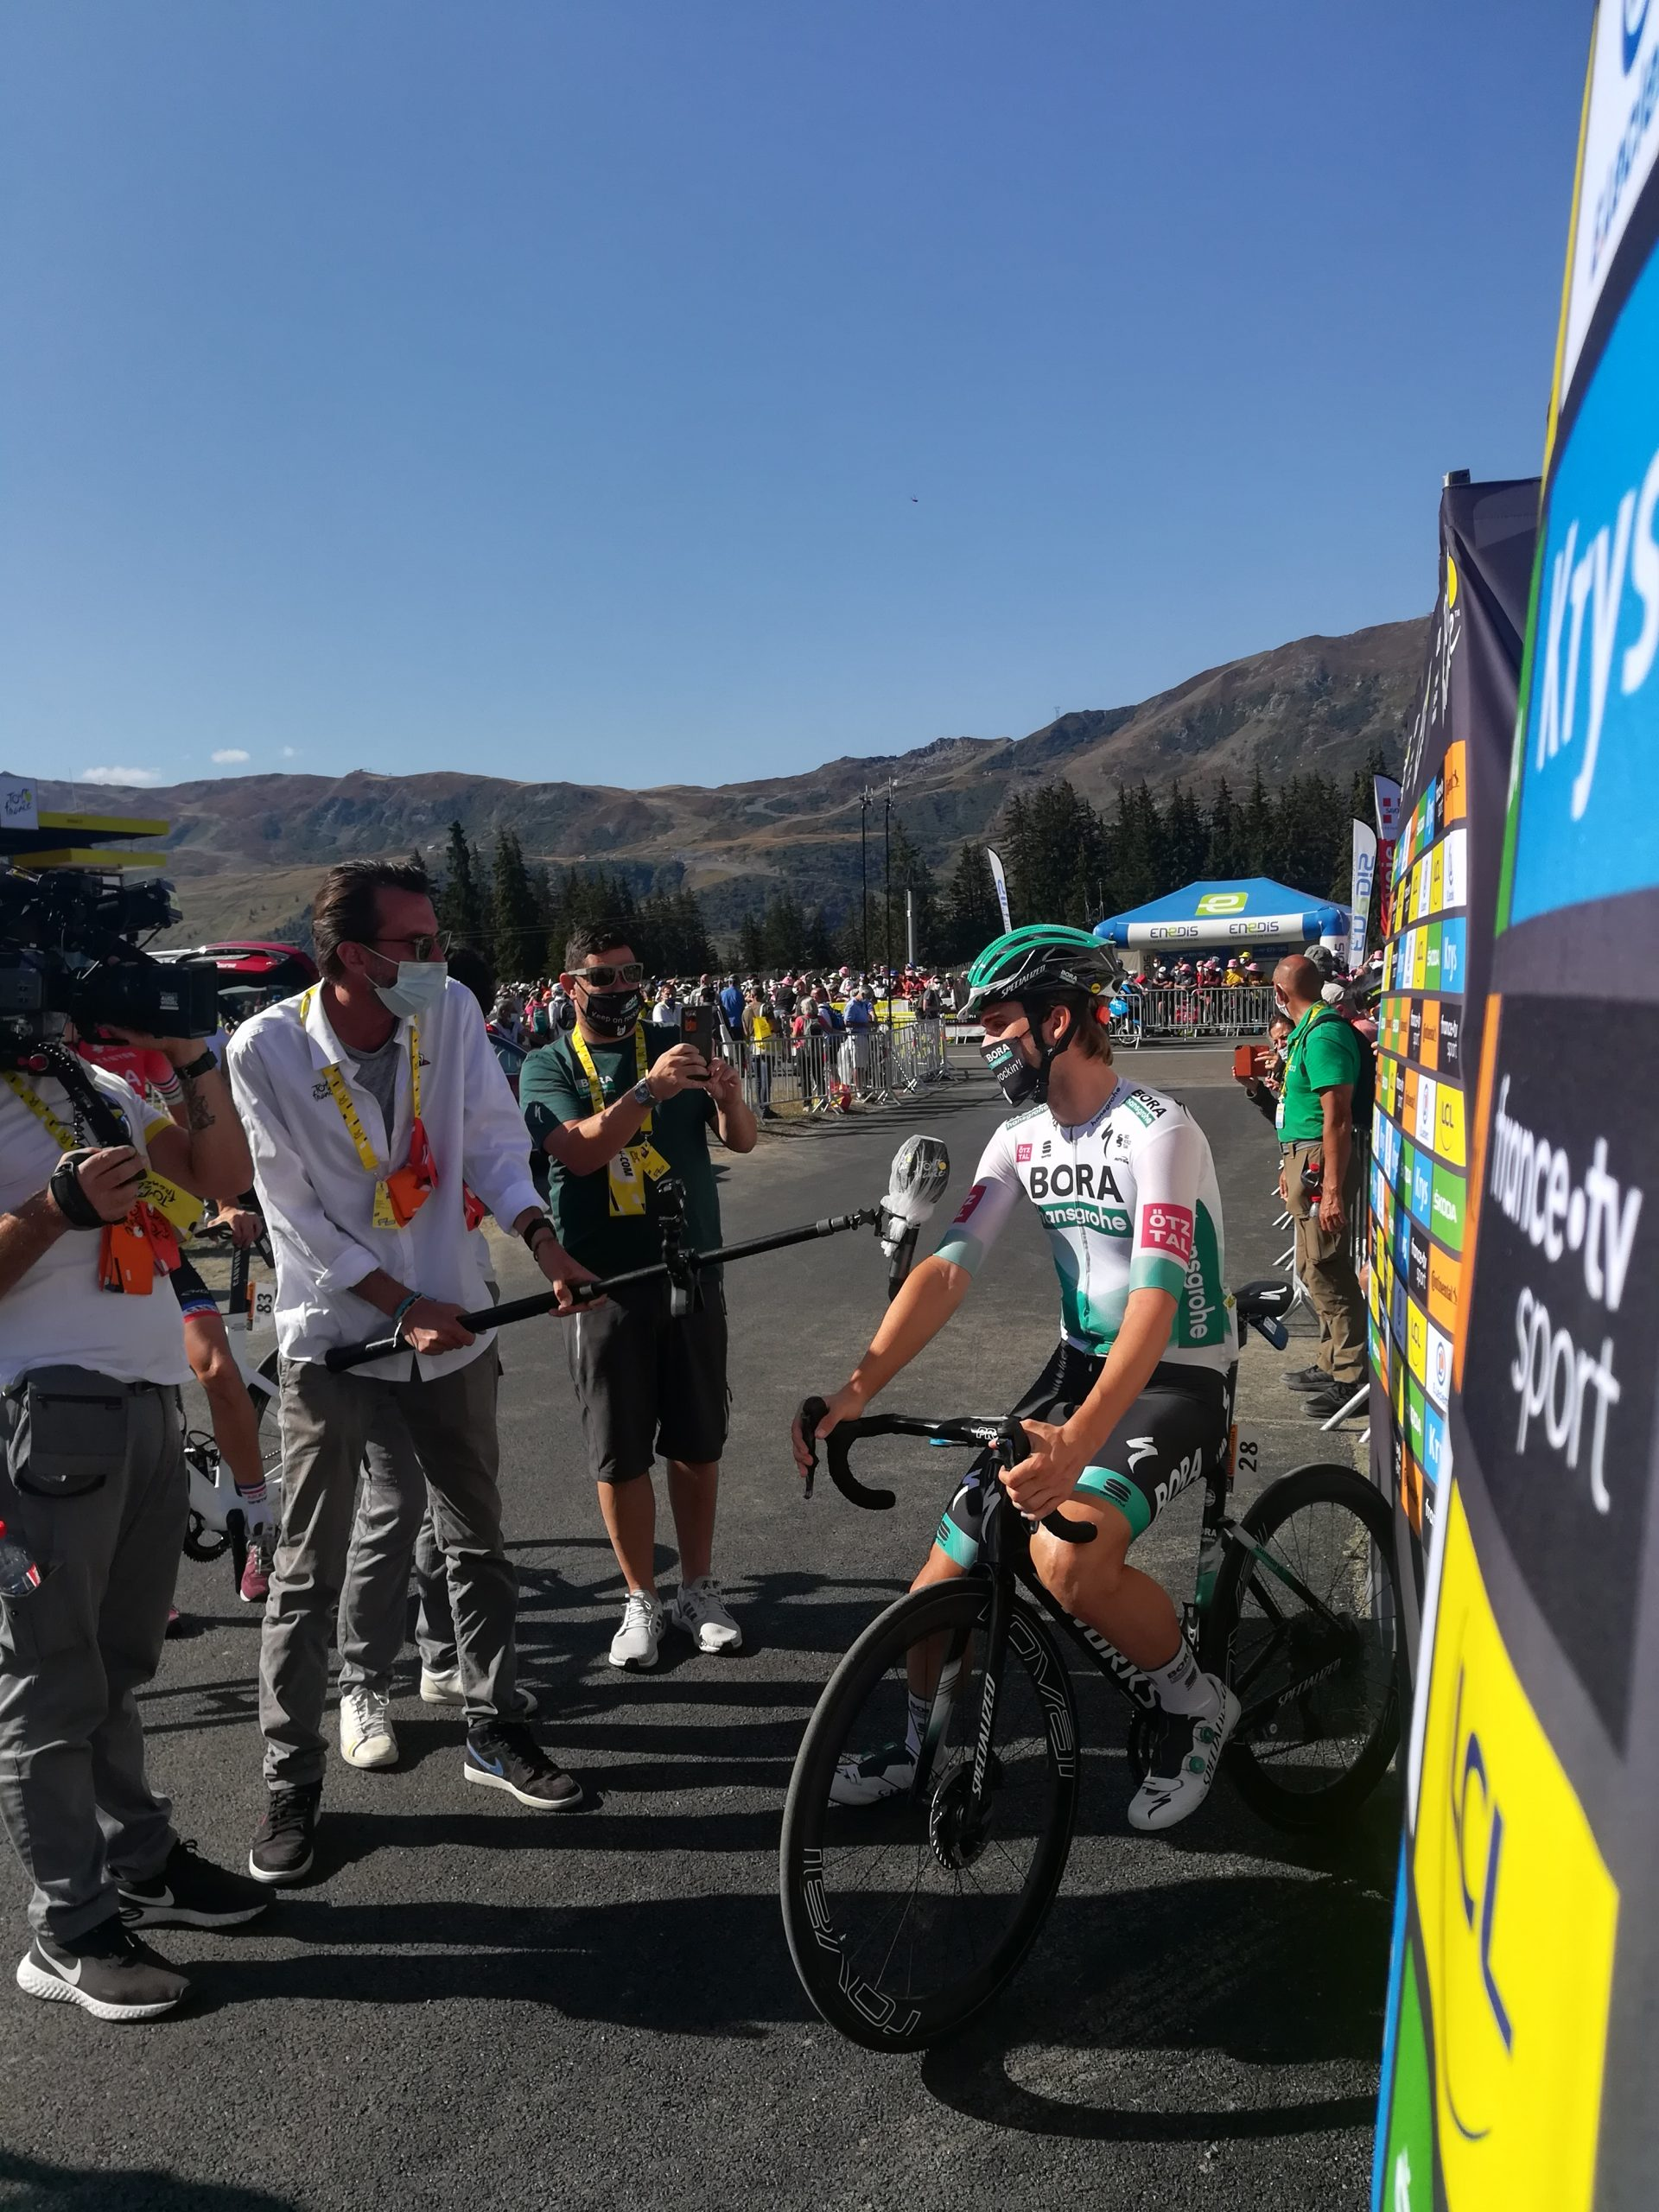 Front row seats for the Depart of stage 18 TdF 2020